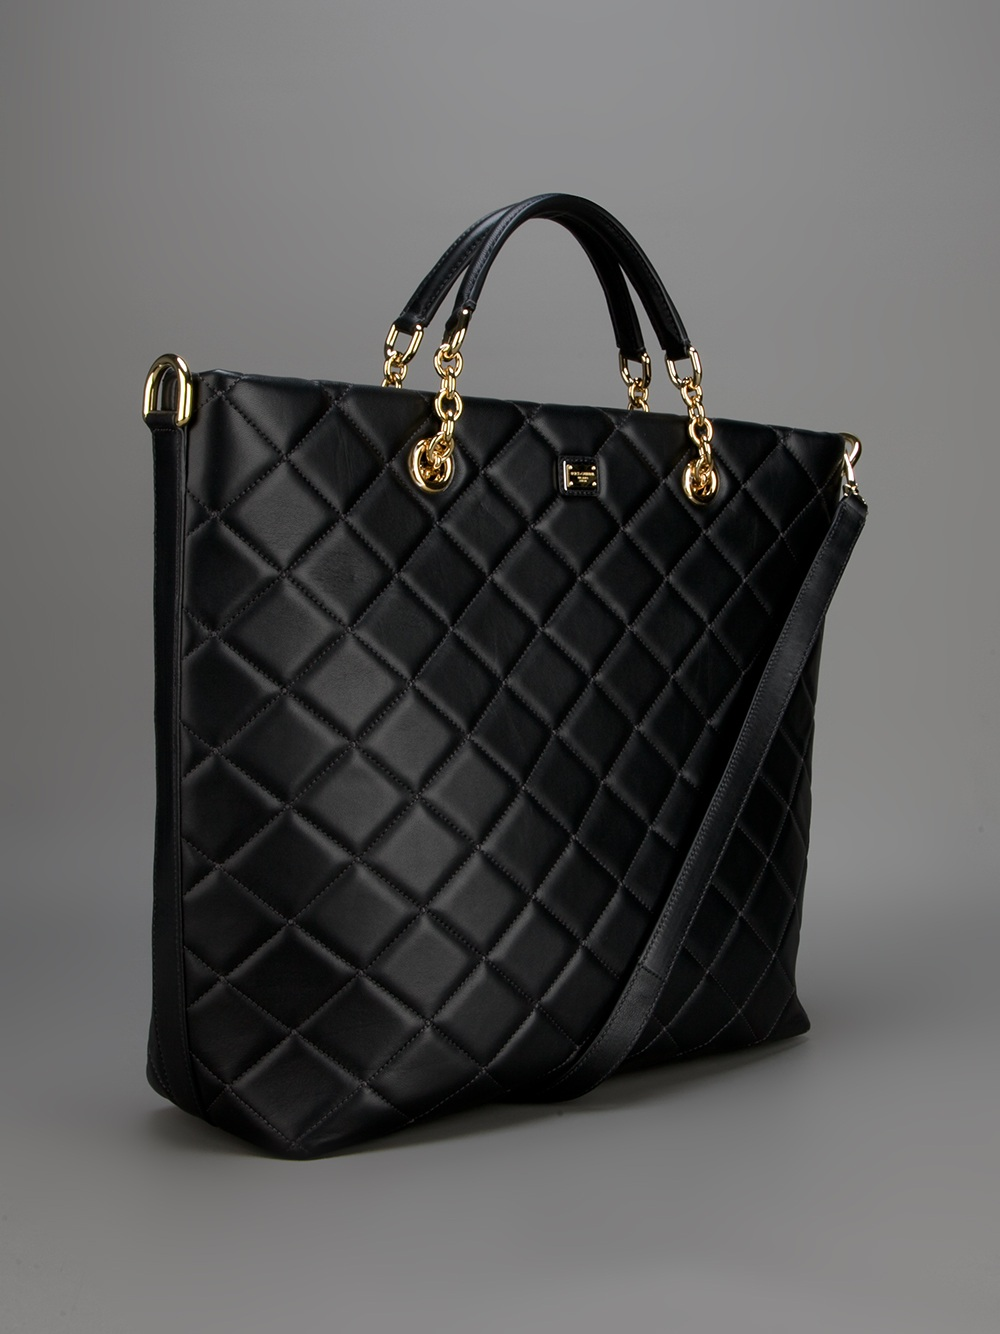 by junior girl drake gallery tote quilt nylon product bags in the lyst its it quilted black s normal